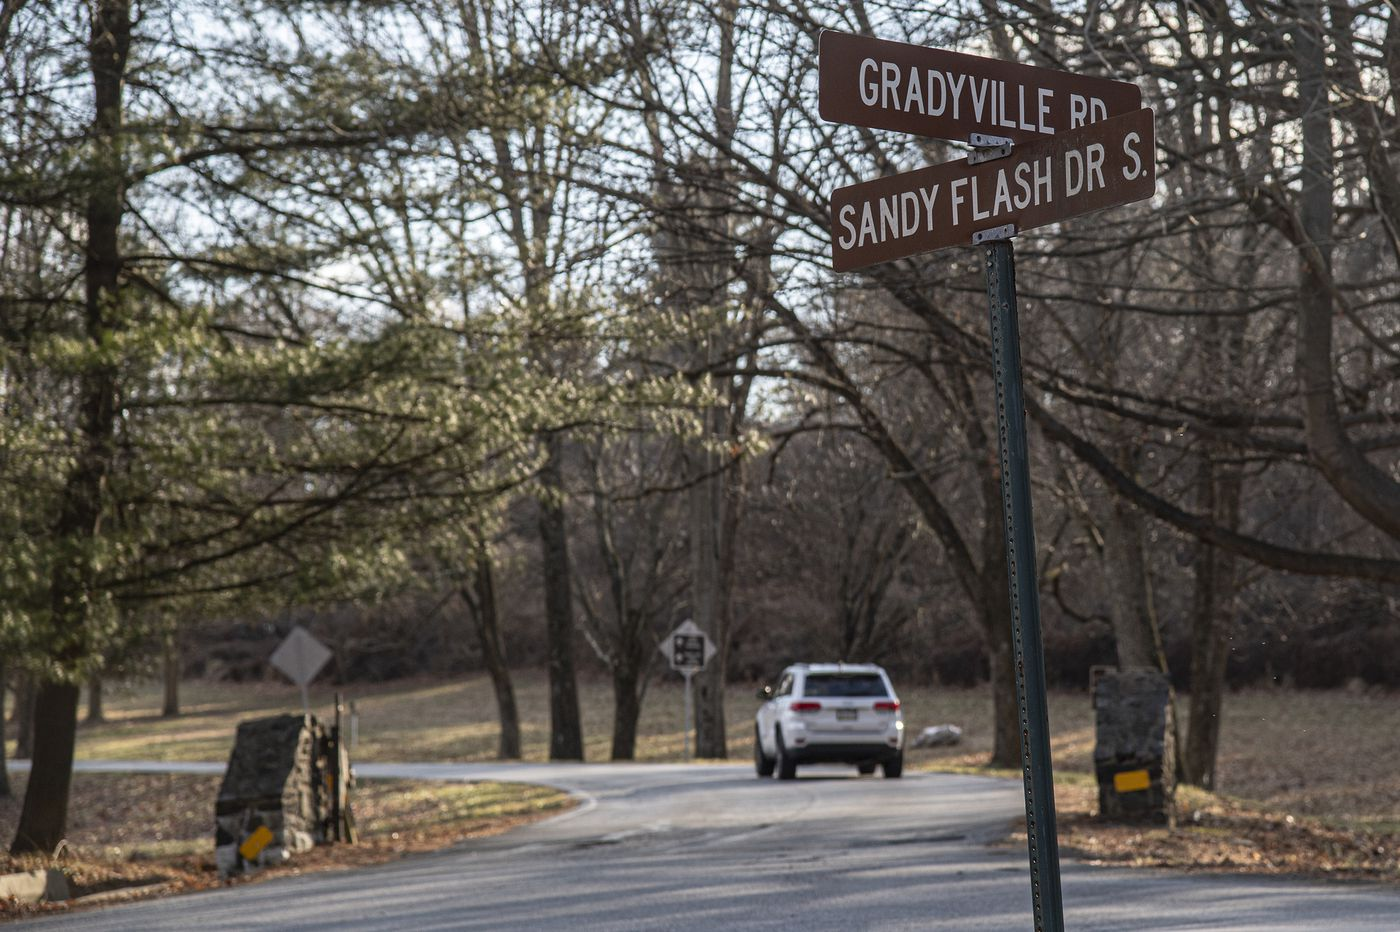 This Revolutionary War traitor is the namesake of streets in the Philly suburbs